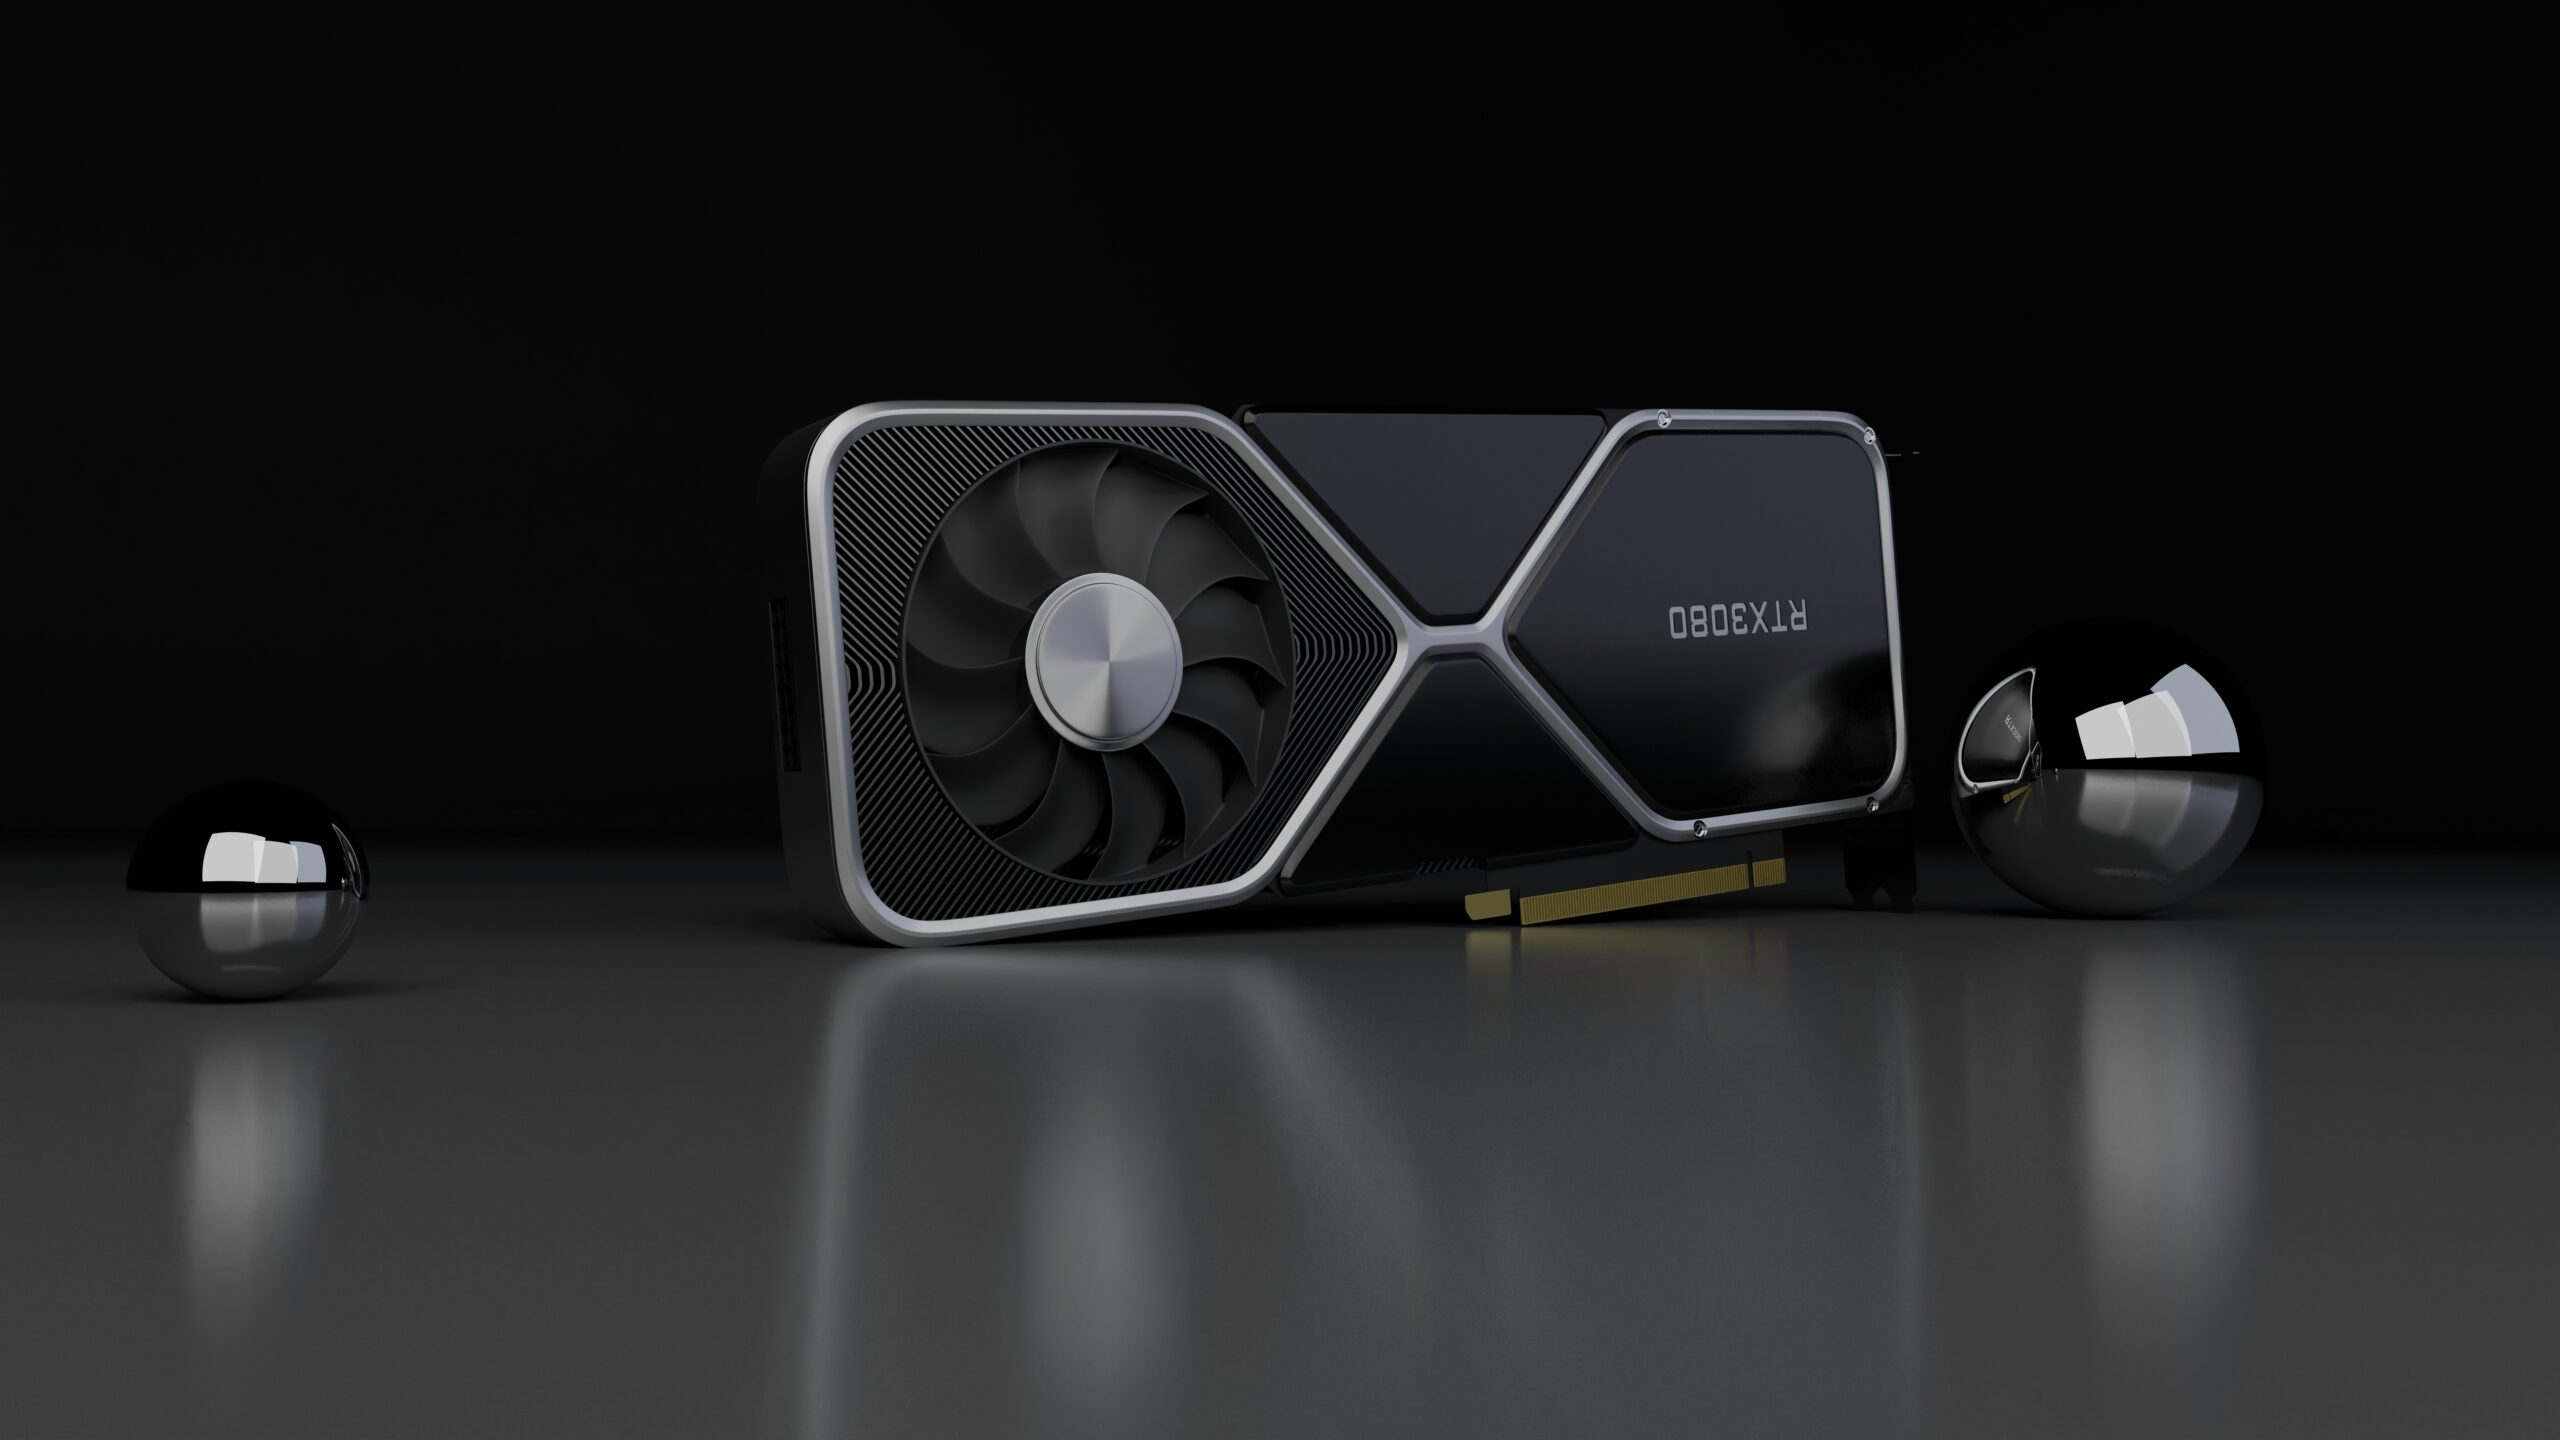 NVIDIA GeForce RTX 3070 Ti & RTX 3070 Specs Detailed – Ampere GA104 GPUs For The $400-$500 Gaming Segment, 8 GB Memory & Up To 3072 Cores - Wccftech